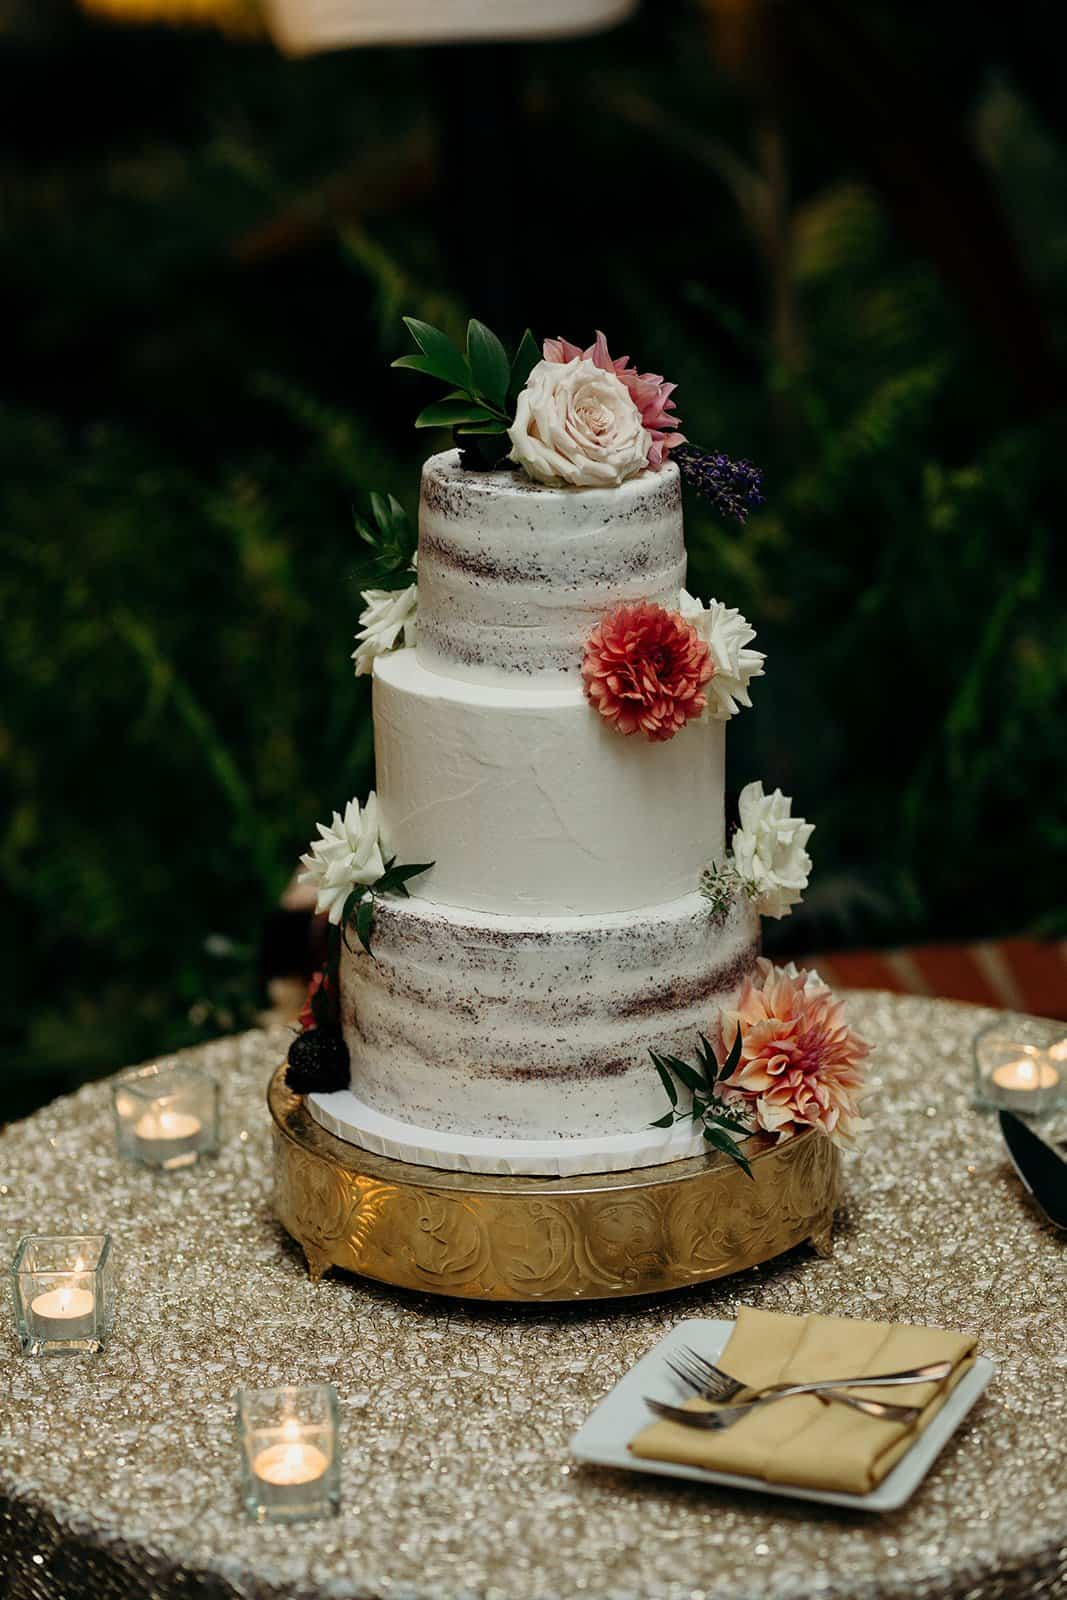 Wedding cake with flowers and candles